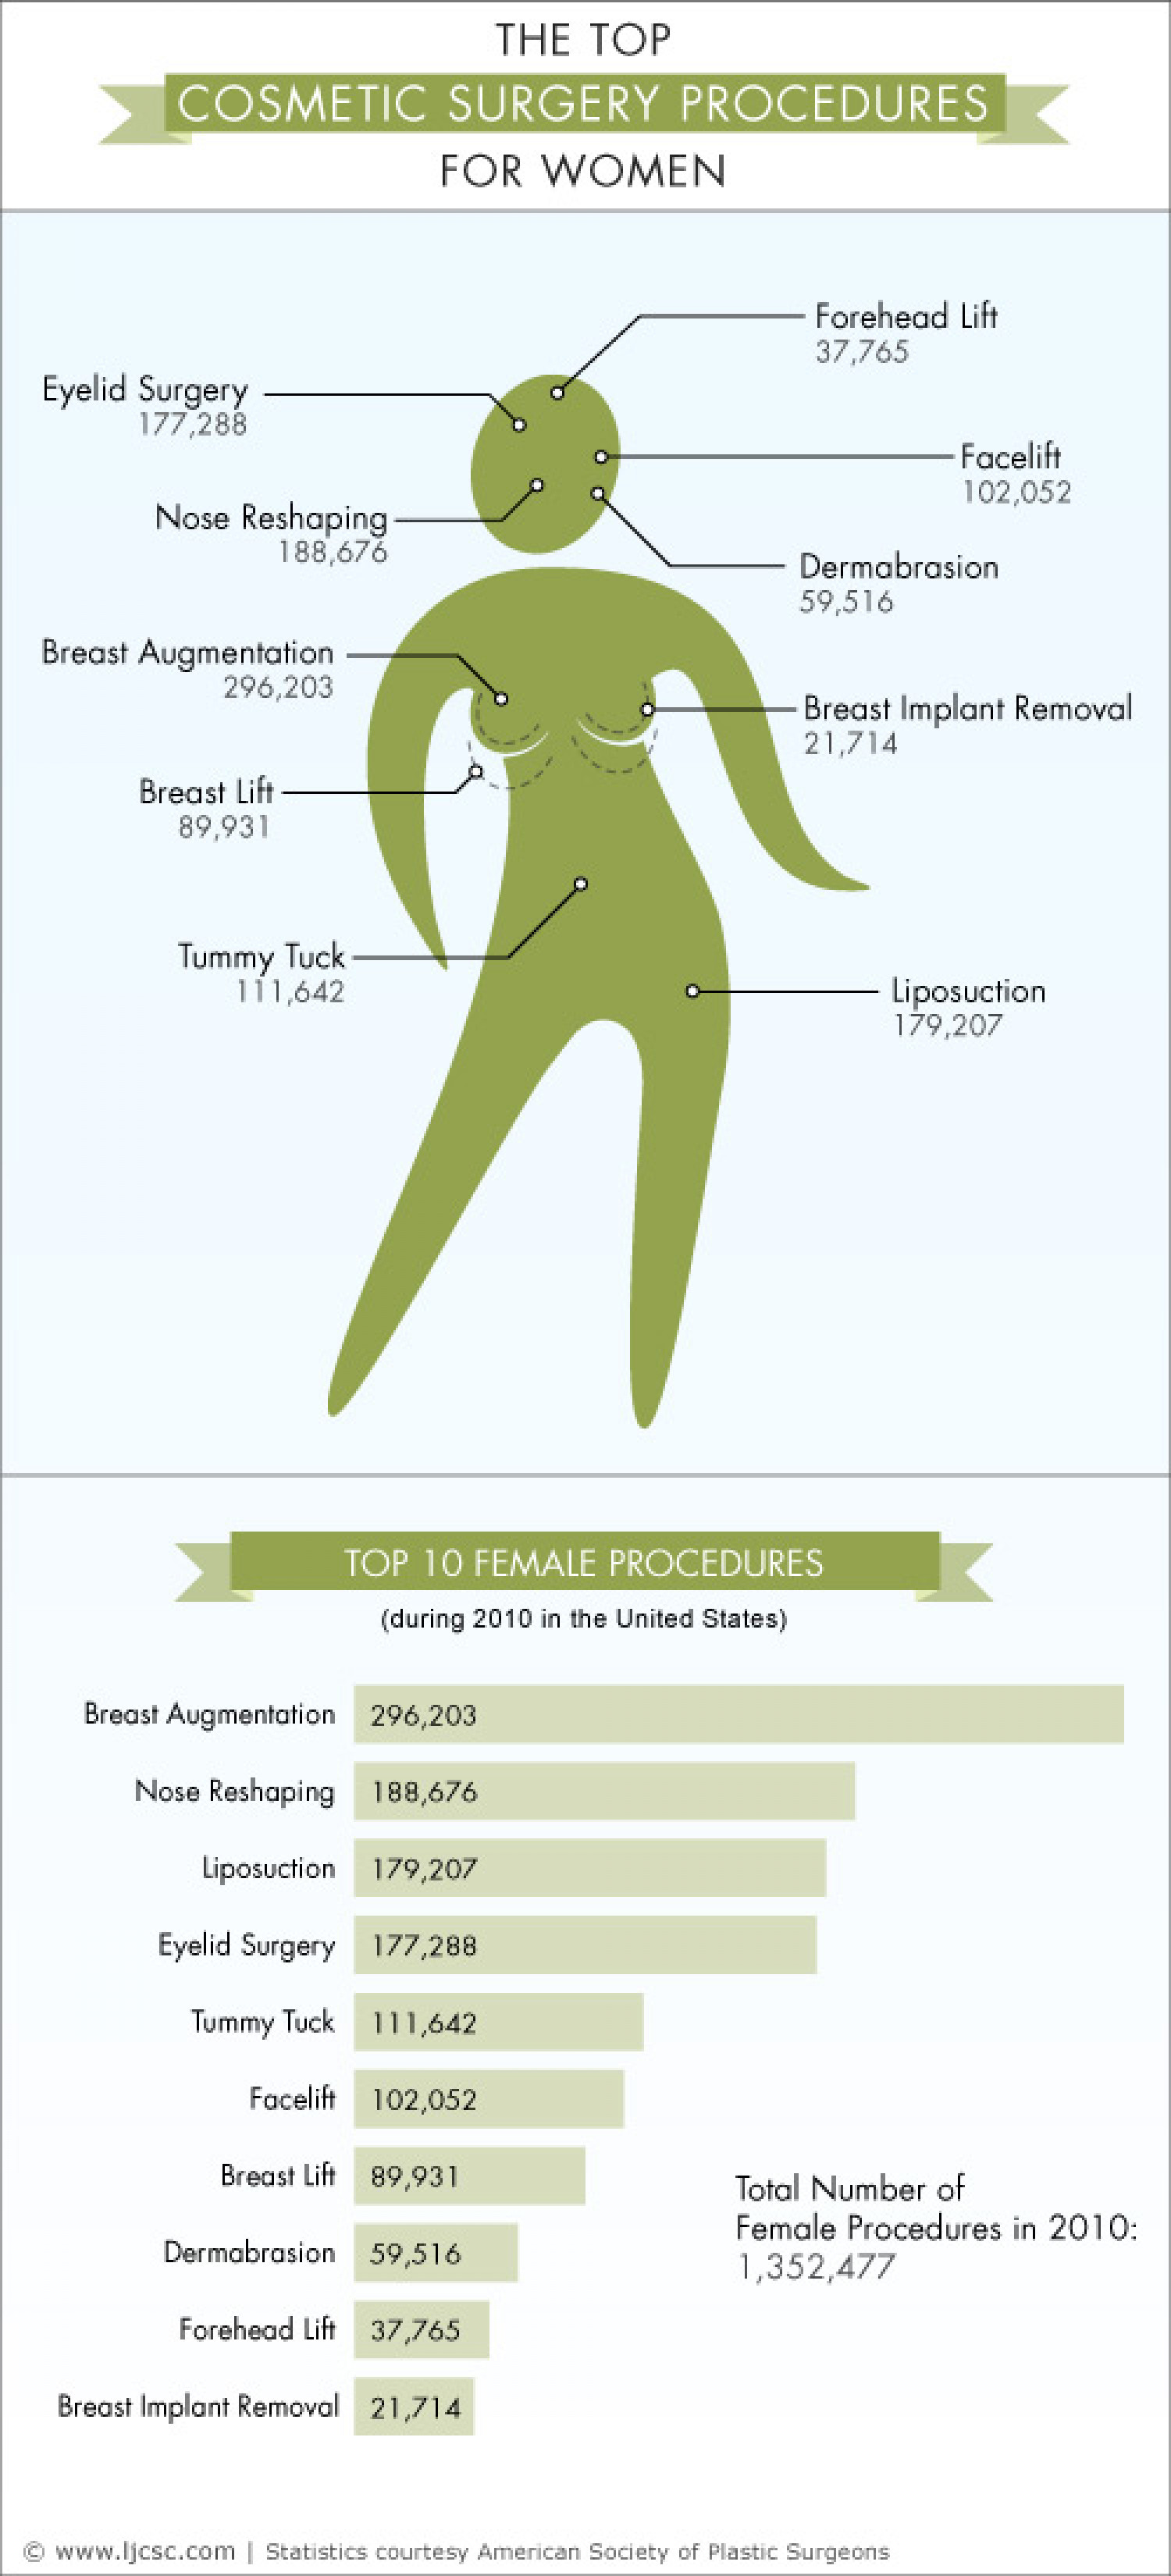 The Top Cosmetic Surgery Procedures for Women Infographic